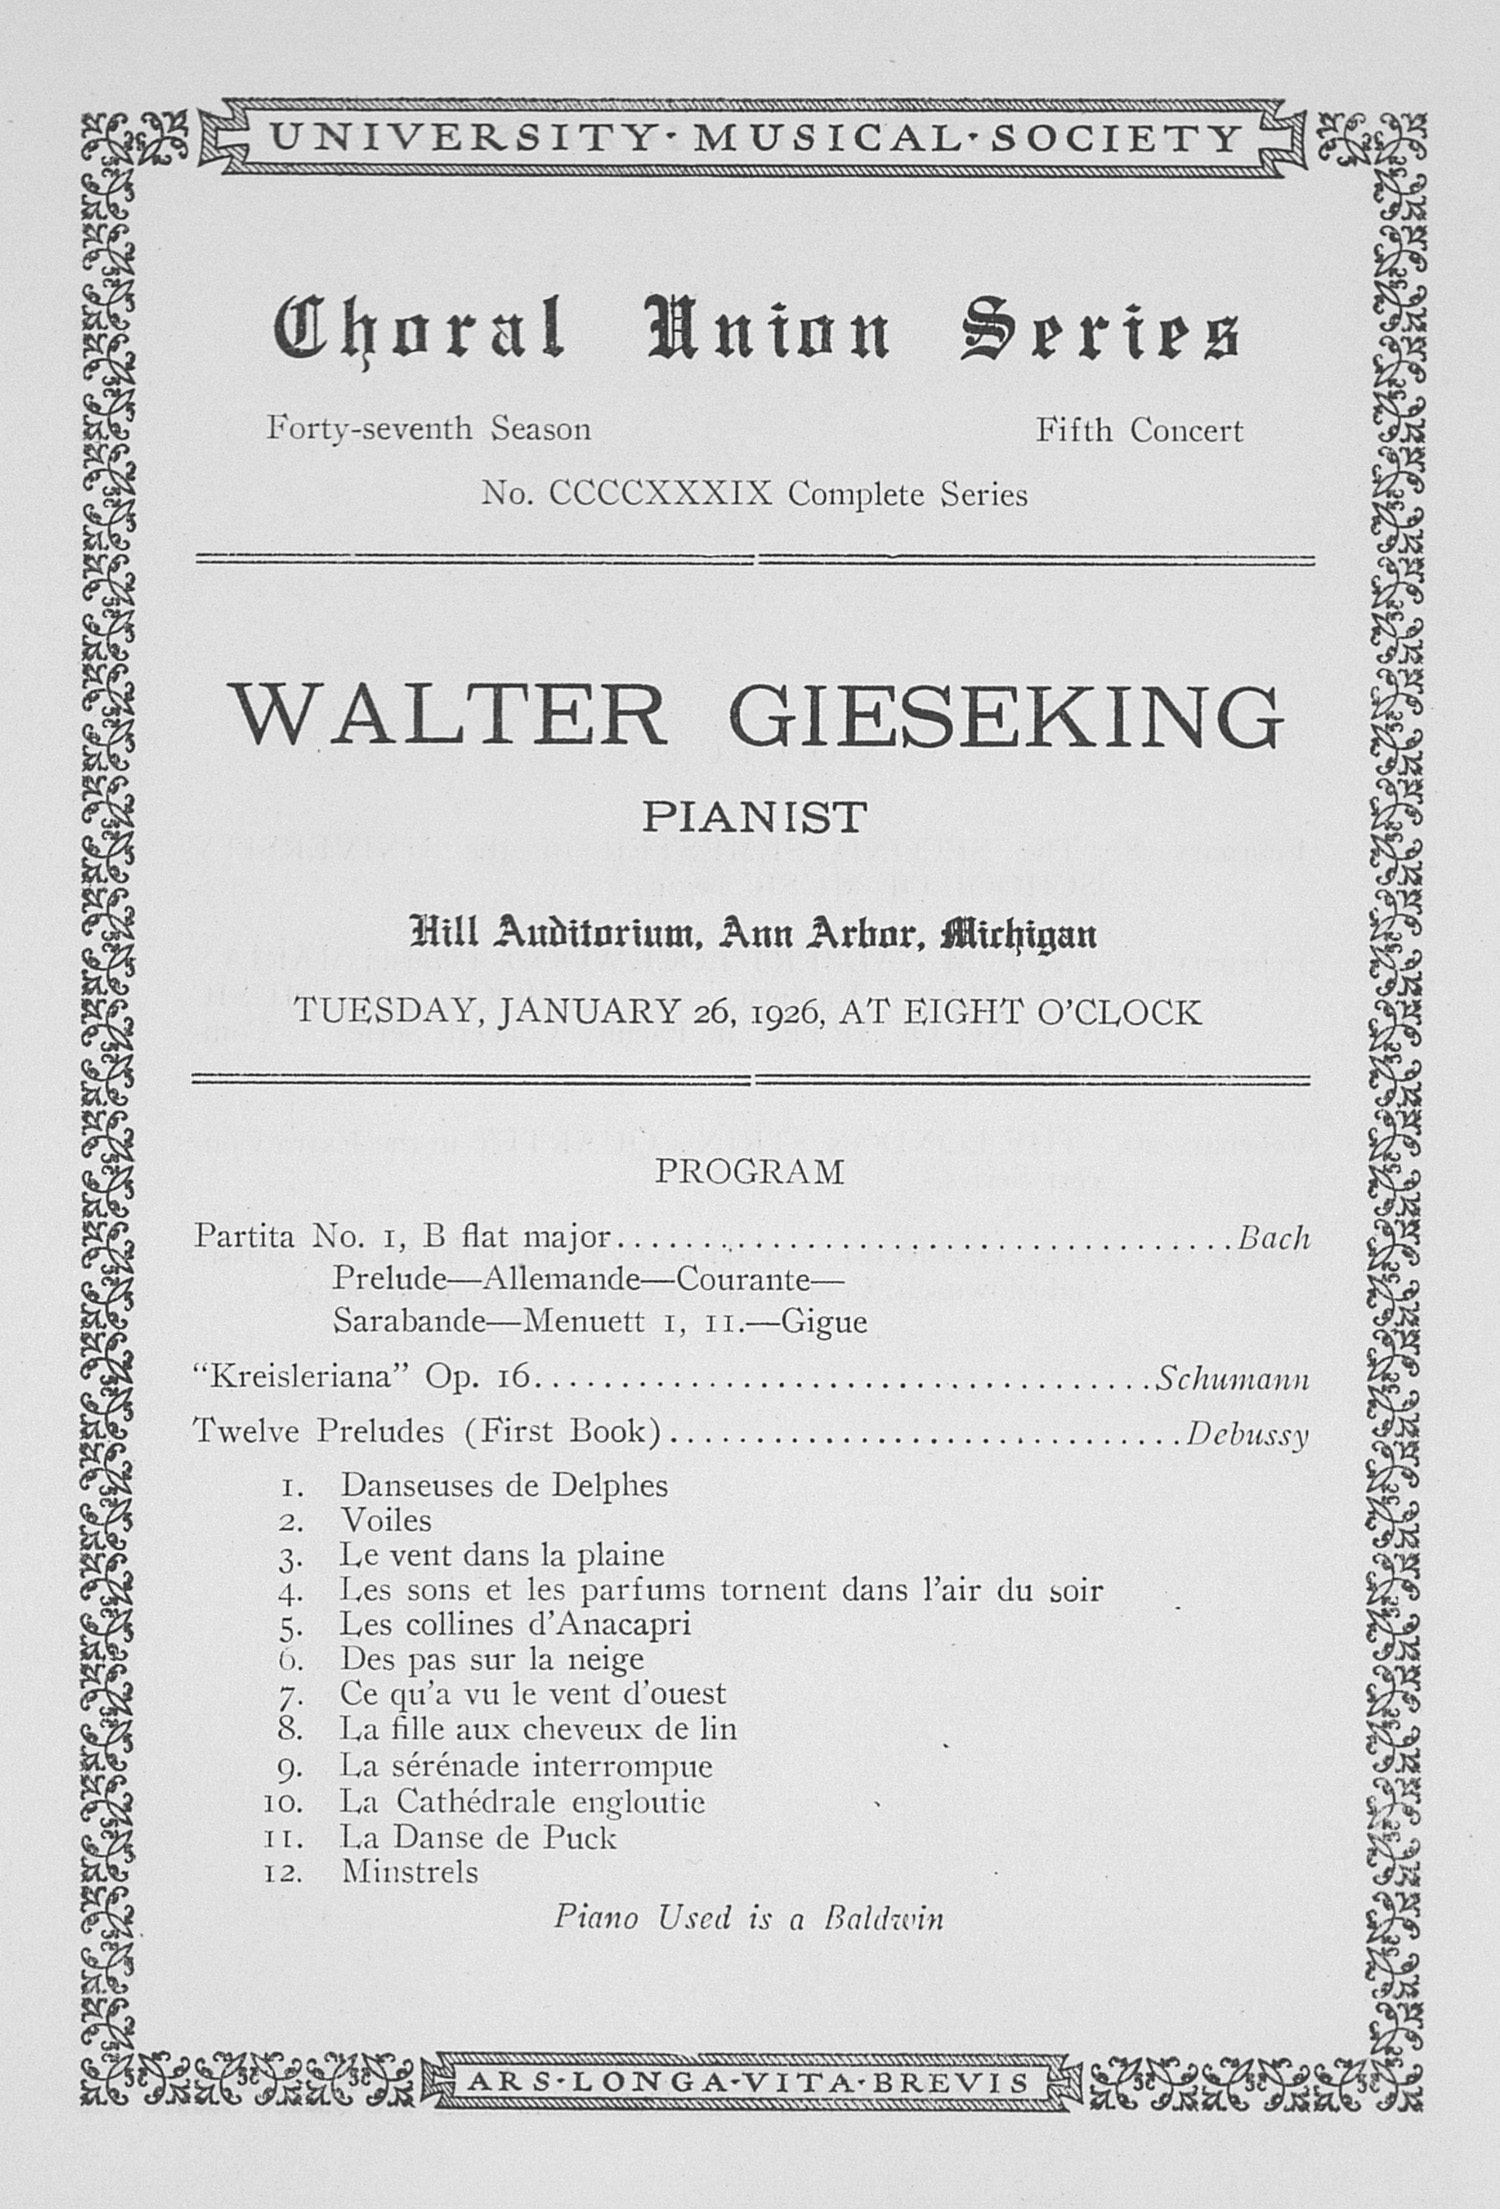 UMS Concert Program, January 26, 1926: Choral Union Series -- Walter Gieseking image